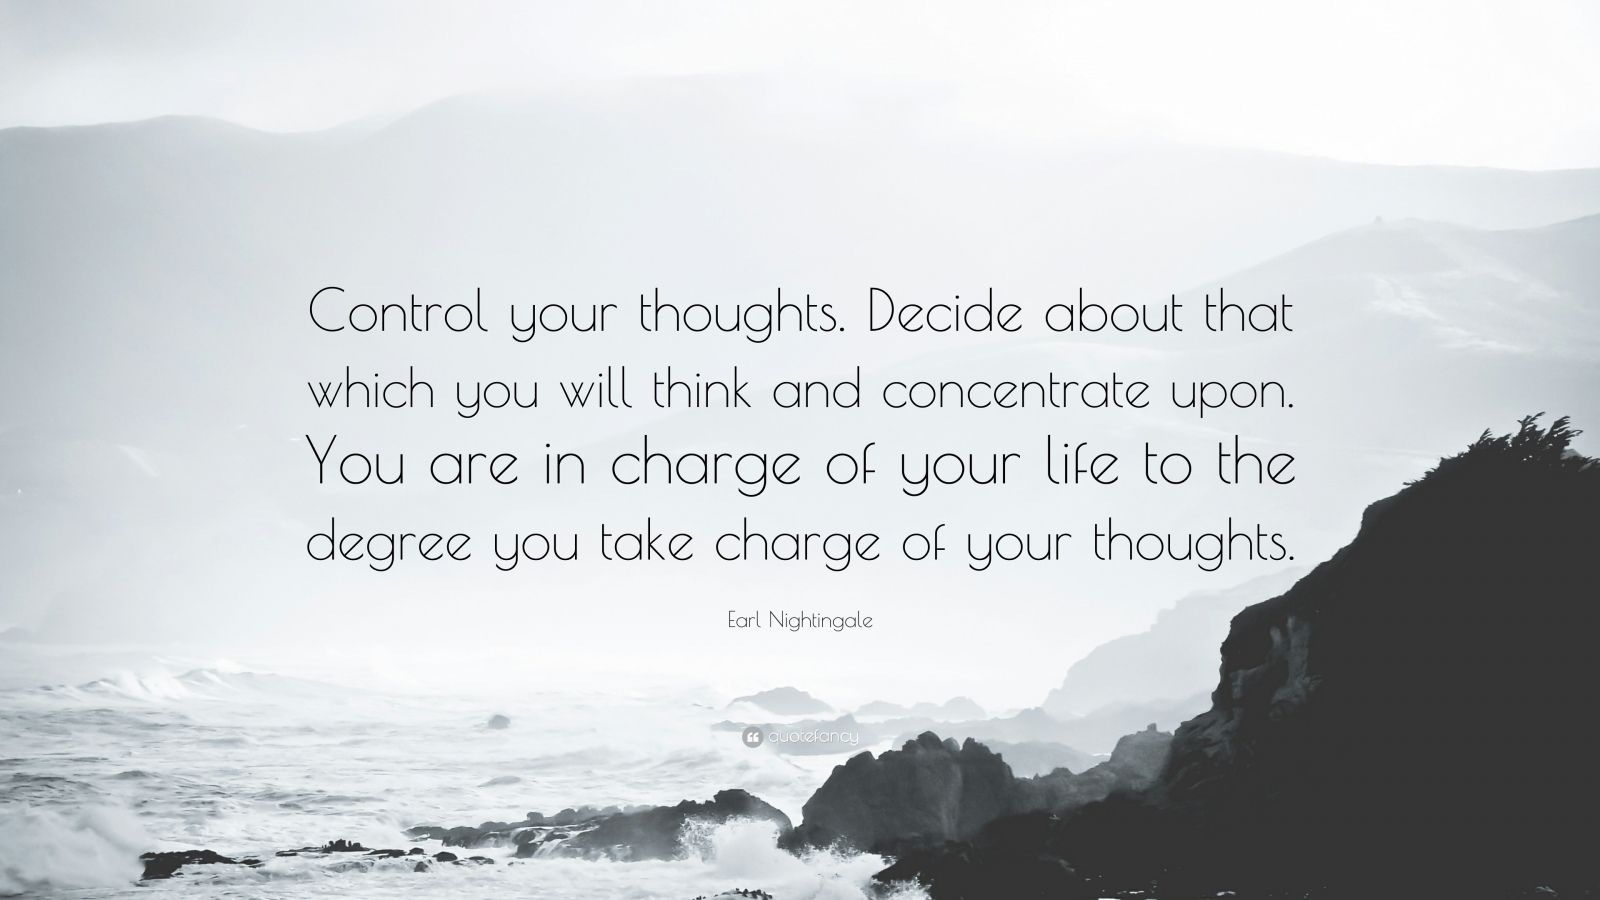 """Earl Nightingale Quote: """"Control your thoughts. Decide about that which you will think and concentrate upon. You are in charge of your life to the degree you take charge of your thoughts."""""""